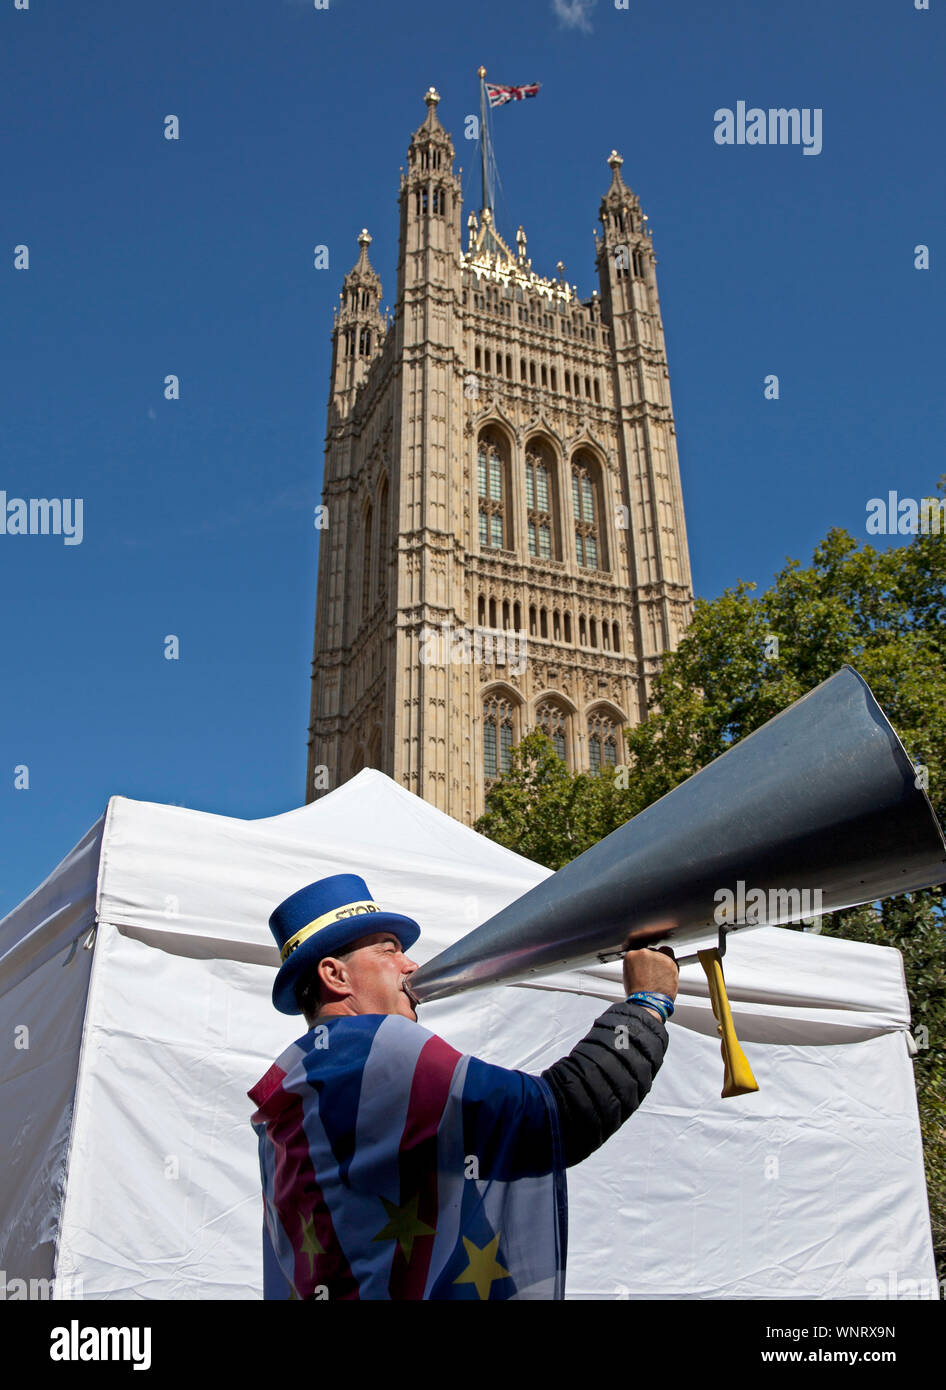 Steve Bray, with megaphone, activist, Mr Stop Brexit, Westminster, London, England, UK Stock Photo